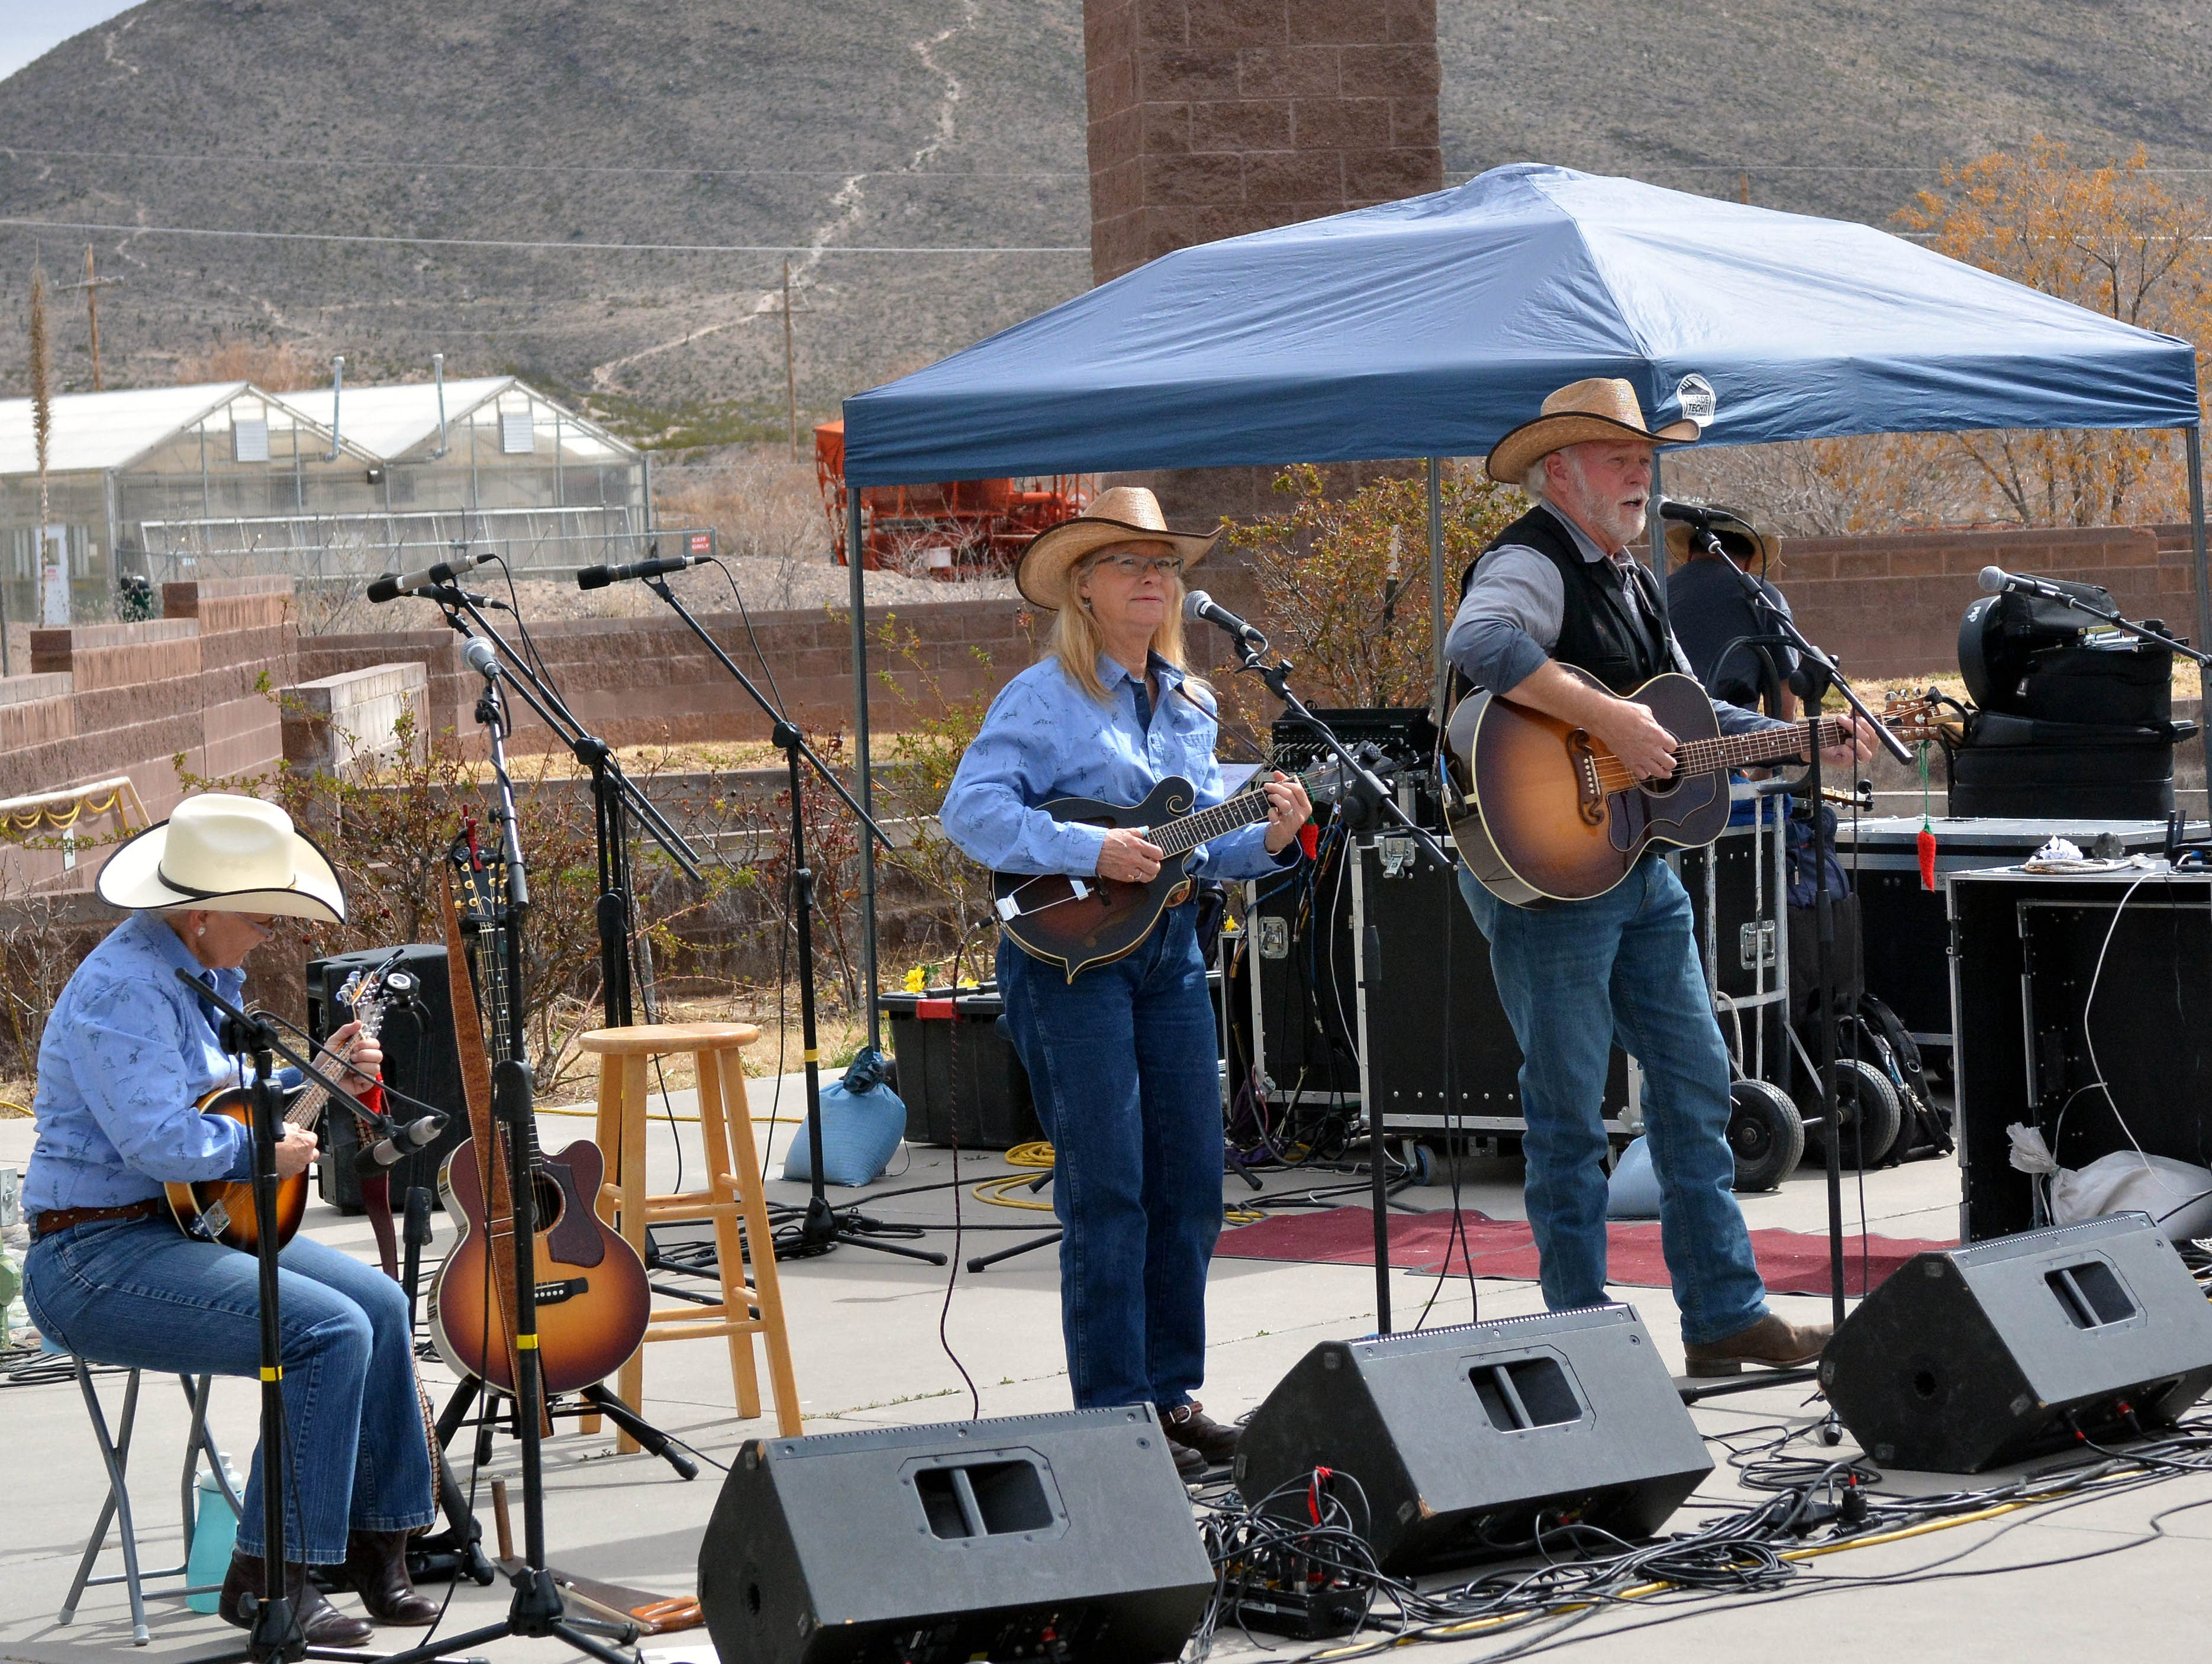 The Ramblin' Rangers from Deming,  provide musical entertainment during the 20th annual Cowboy Days, held Saturday, March 2, 2019, at the New Mexico Farm and Ranch Heritage Museum.